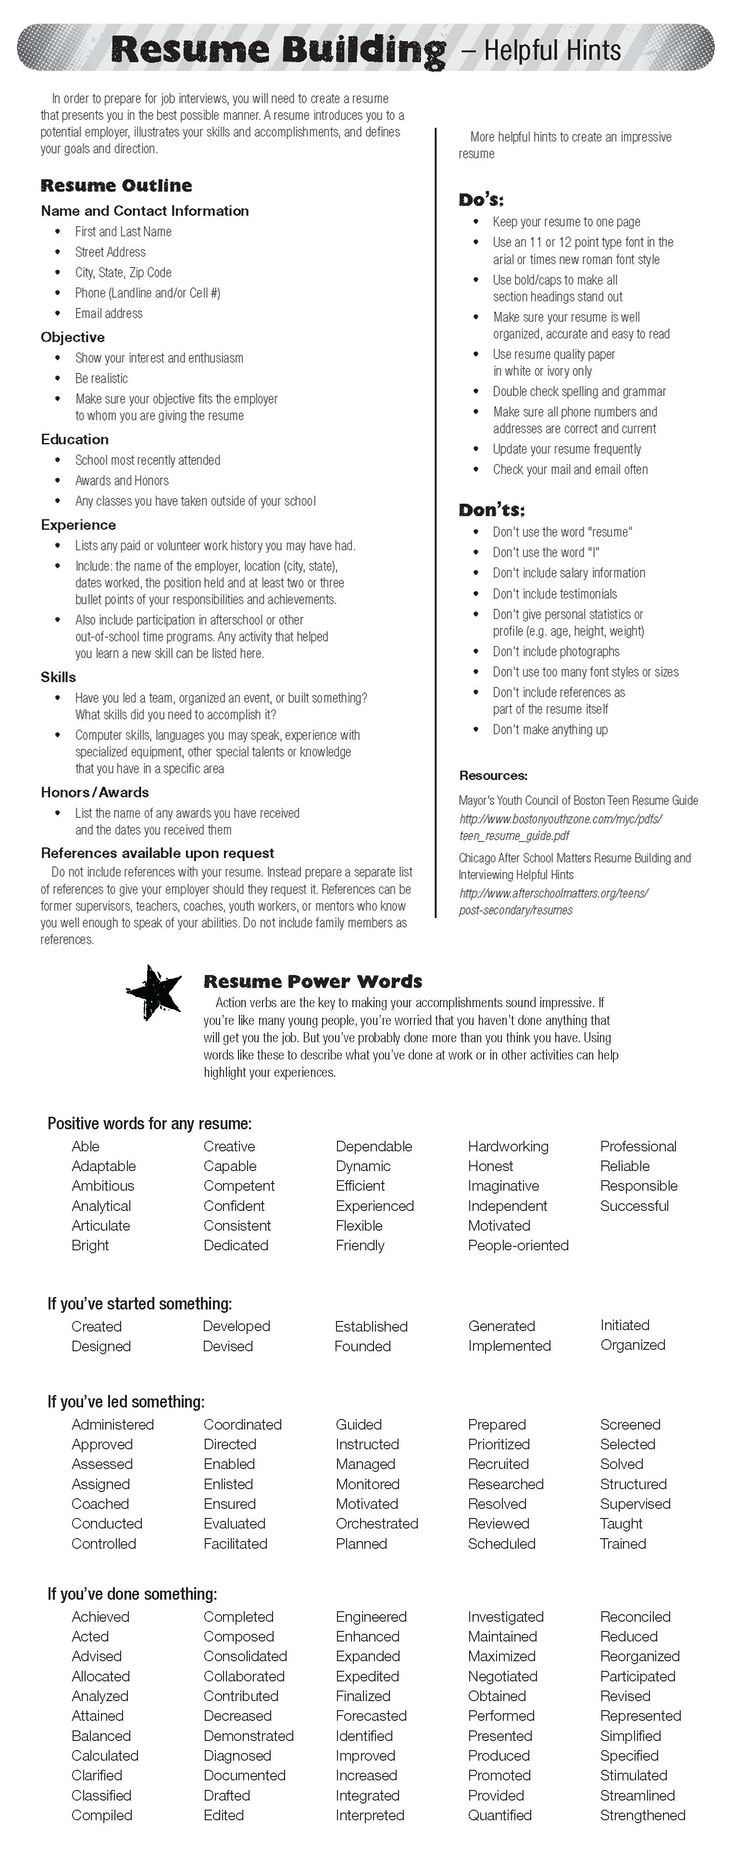 Picnictoimpeachus  Surprising  Ideas About Resume On Pinterest  Cv Format Resume Cv And  With Lovable  Ideas About Resume On Pinterest  Cv Format Resume Cv And Resume Templates With Lovely Salary Requirements In Resume Also Creative Resume Builder In Addition Please See Attached Resume And What Is A Cover Page For A Resume As Well As Resume Builder Free Online Printable Additionally Key Skills To Put On Resume From Pinterestcom With Picnictoimpeachus  Lovable  Ideas About Resume On Pinterest  Cv Format Resume Cv And  With Lovely  Ideas About Resume On Pinterest  Cv Format Resume Cv And Resume Templates And Surprising Salary Requirements In Resume Also Creative Resume Builder In Addition Please See Attached Resume From Pinterestcom